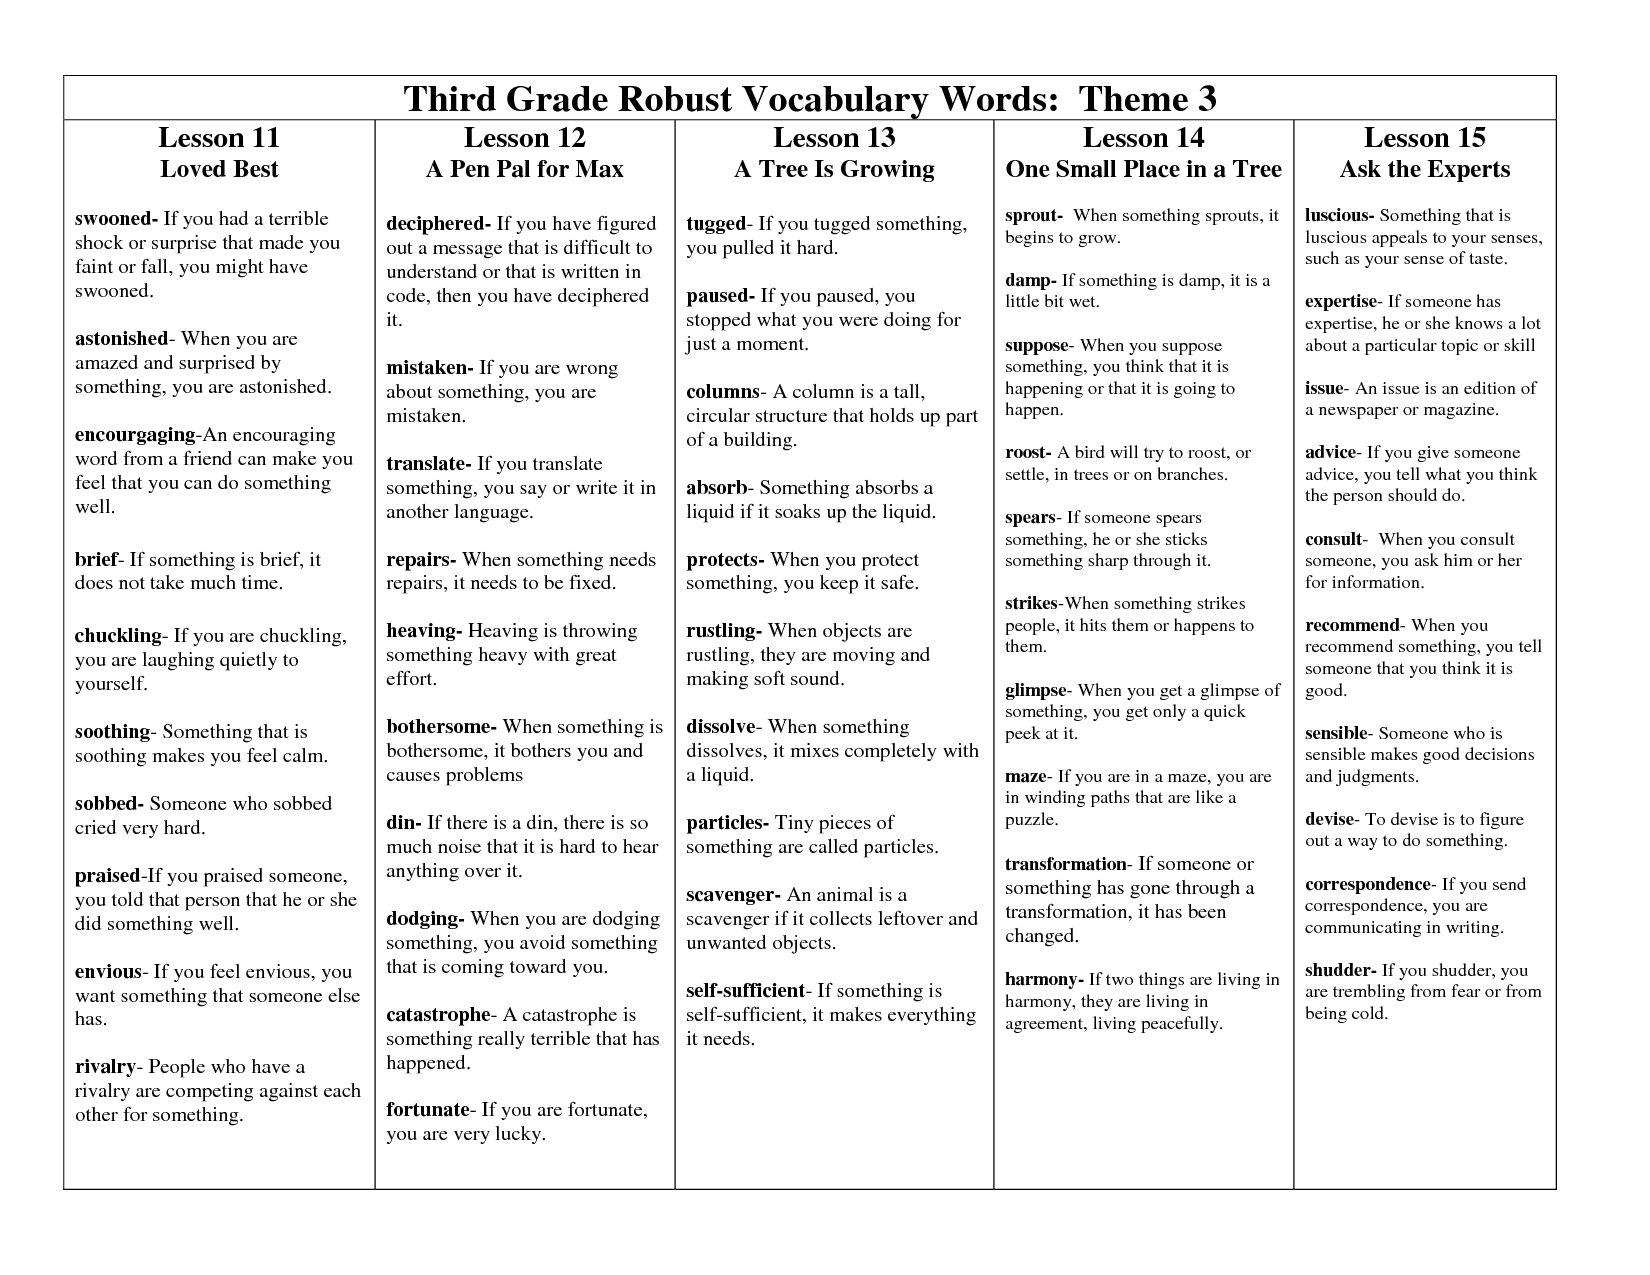 Third Grade Robust Vocabulary Words Theme 2 Third Grade Robust ...